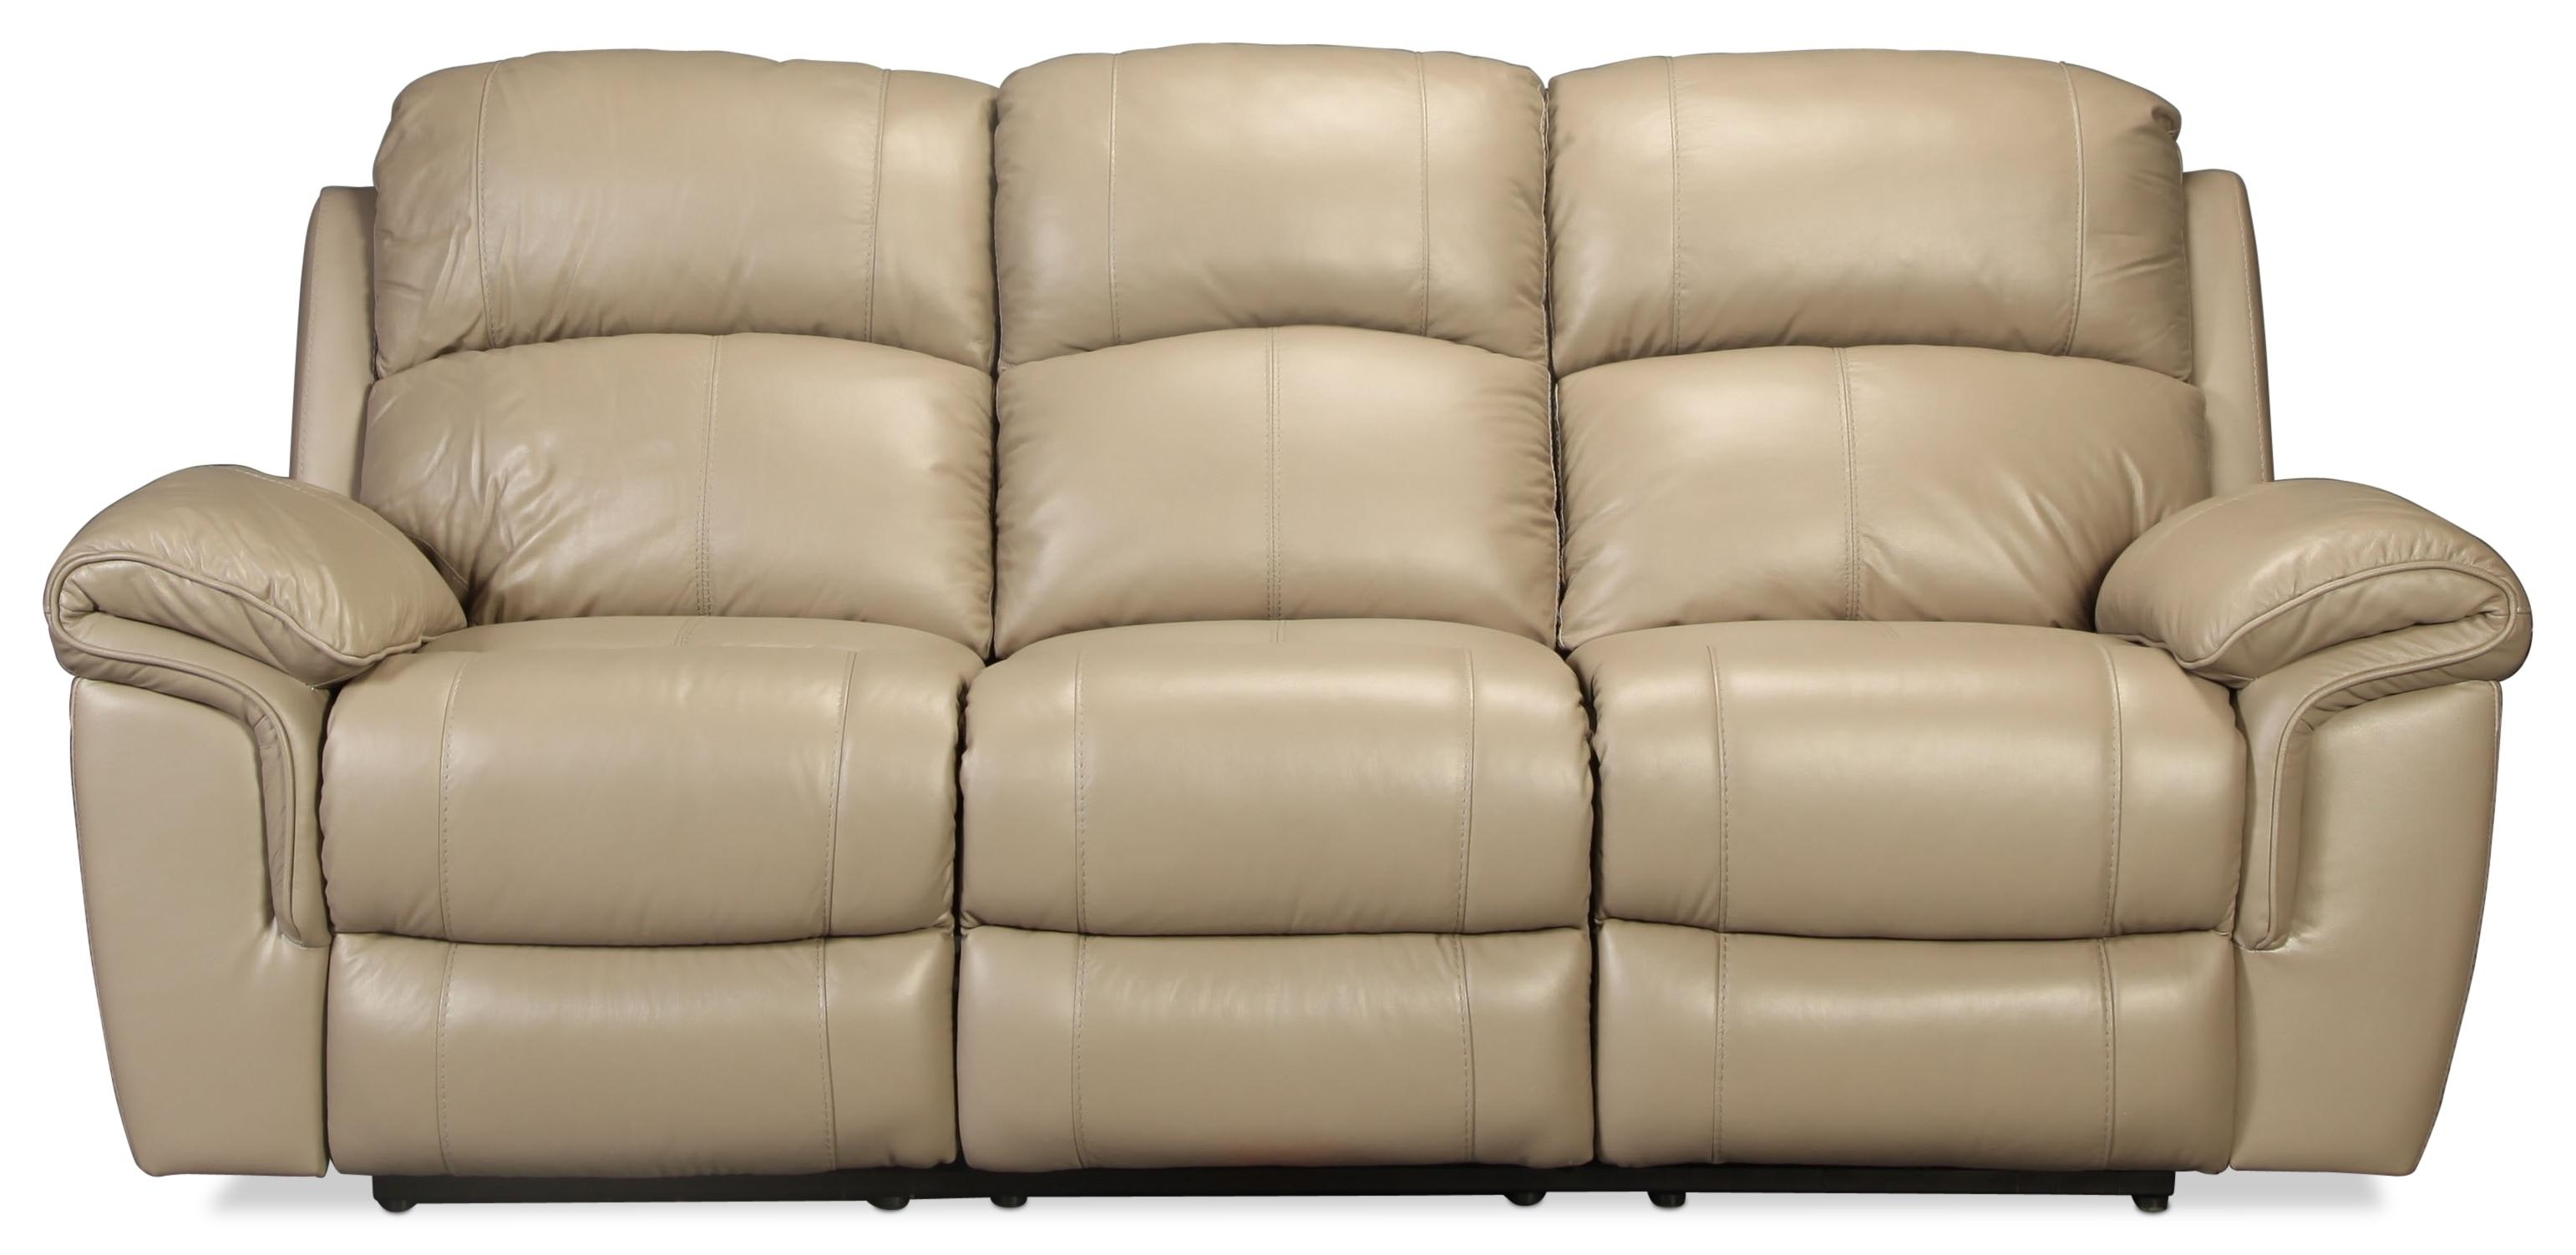 Braxton Power Reclining Sofa | Levin Furniture In Braxton Sofas (Image 9 of 20)